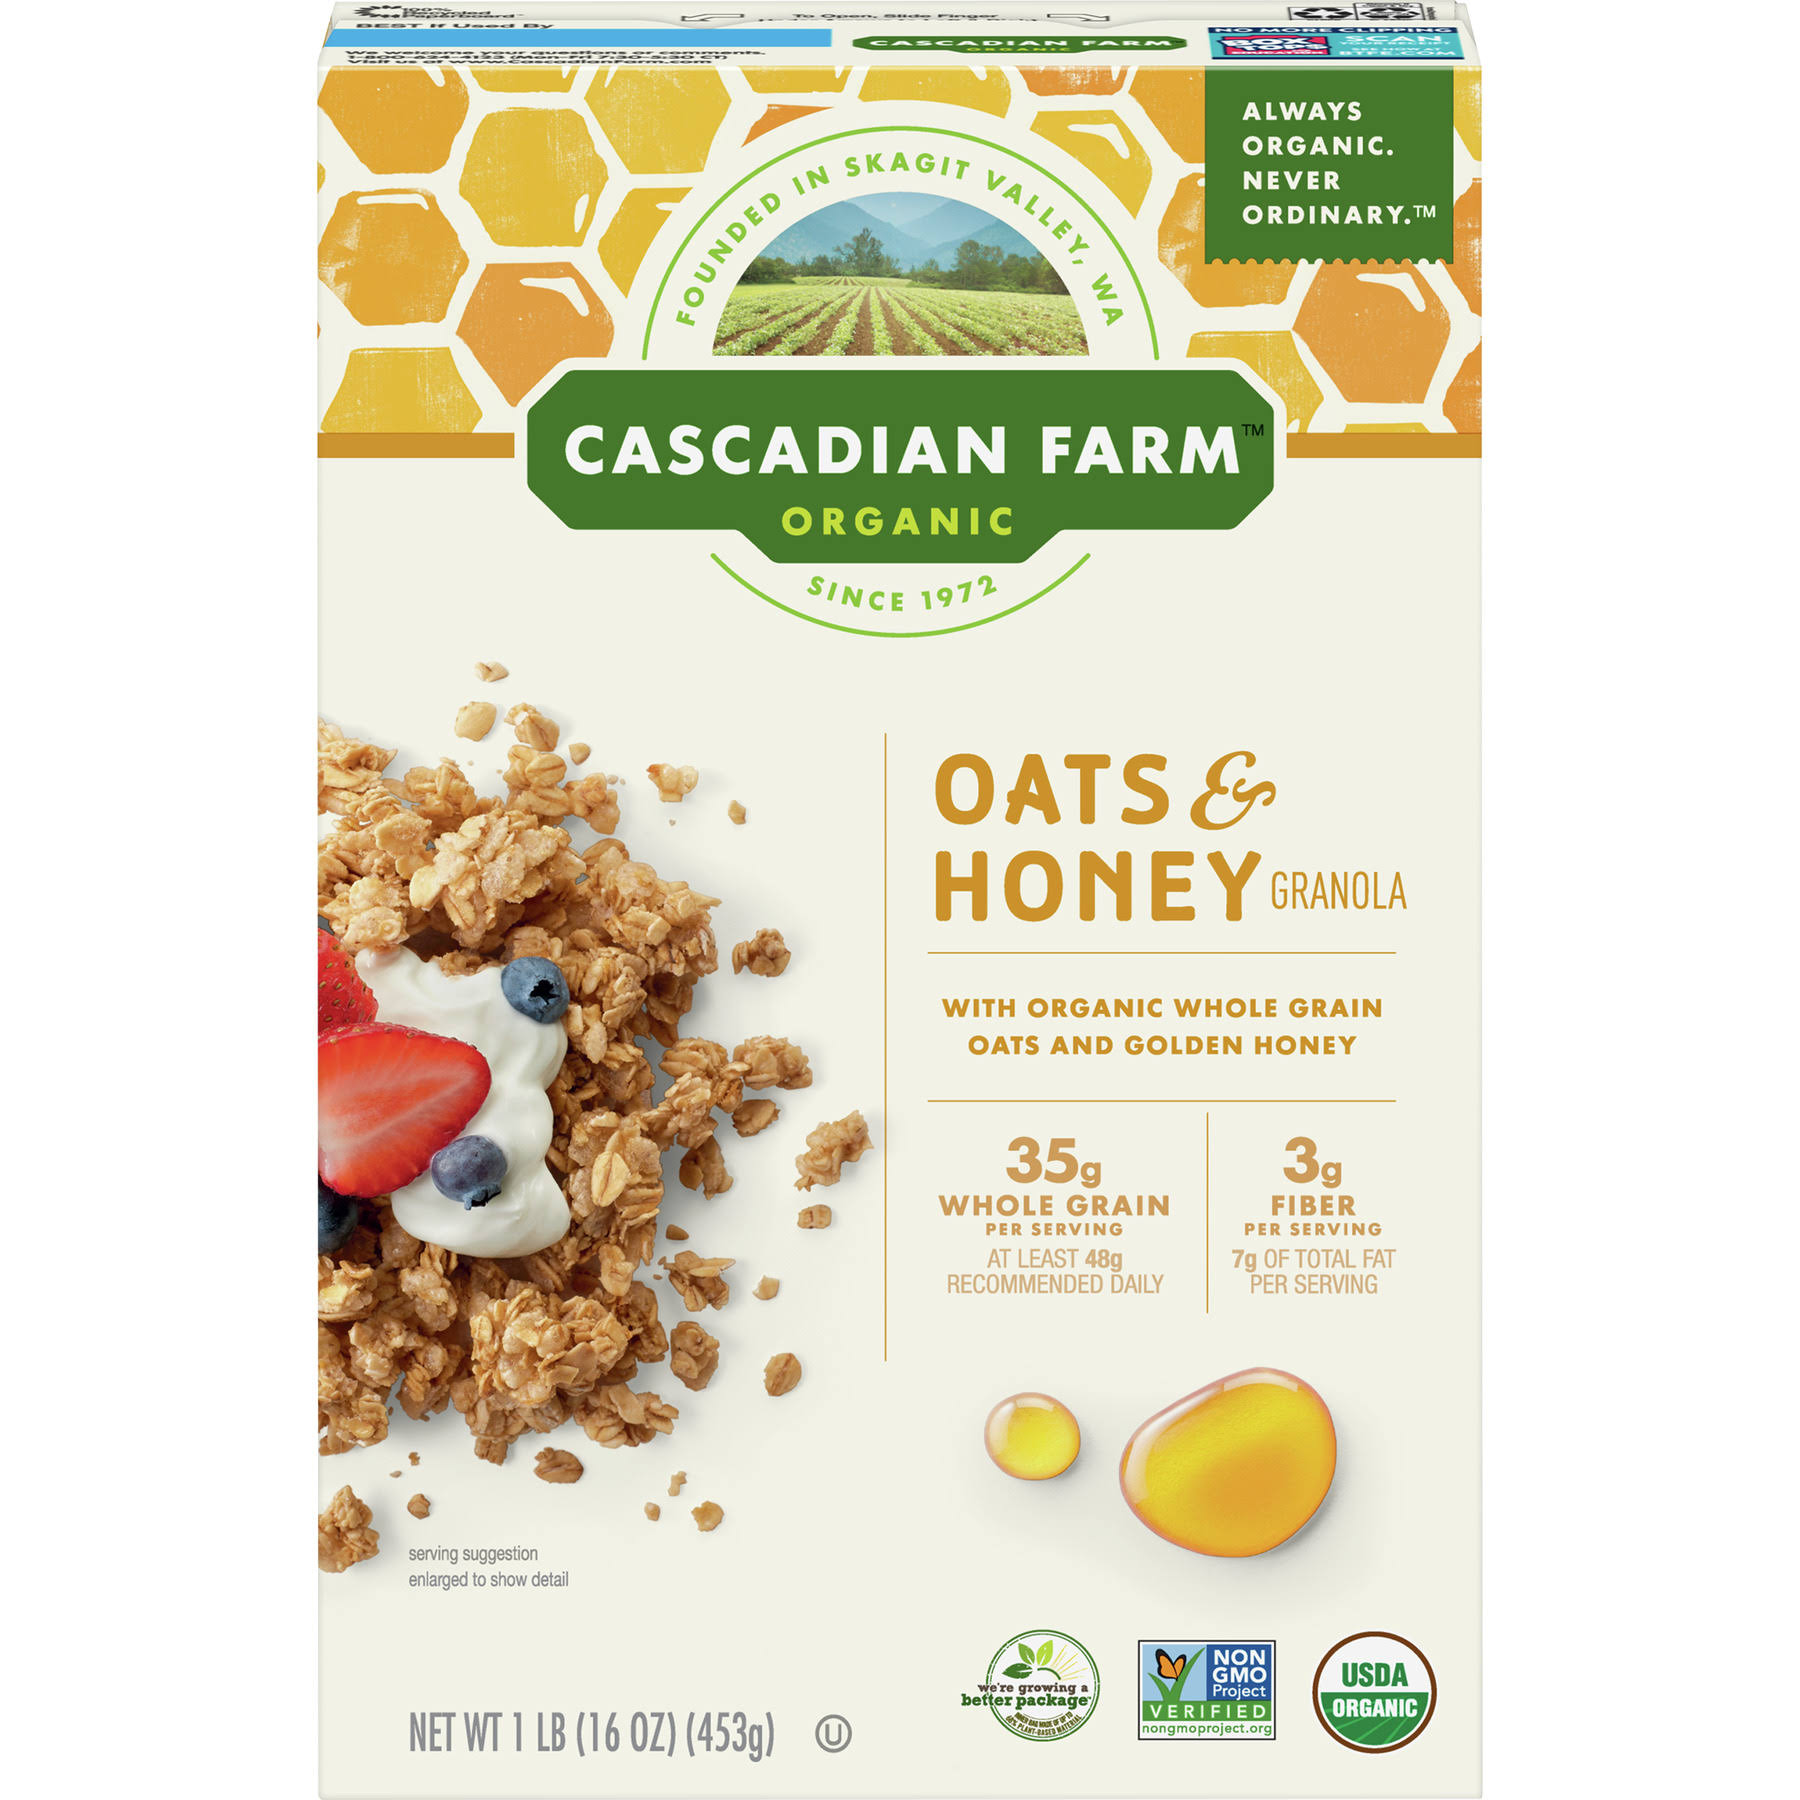 Cascadian Farm Organic Granola - 453g, Oats & Honey